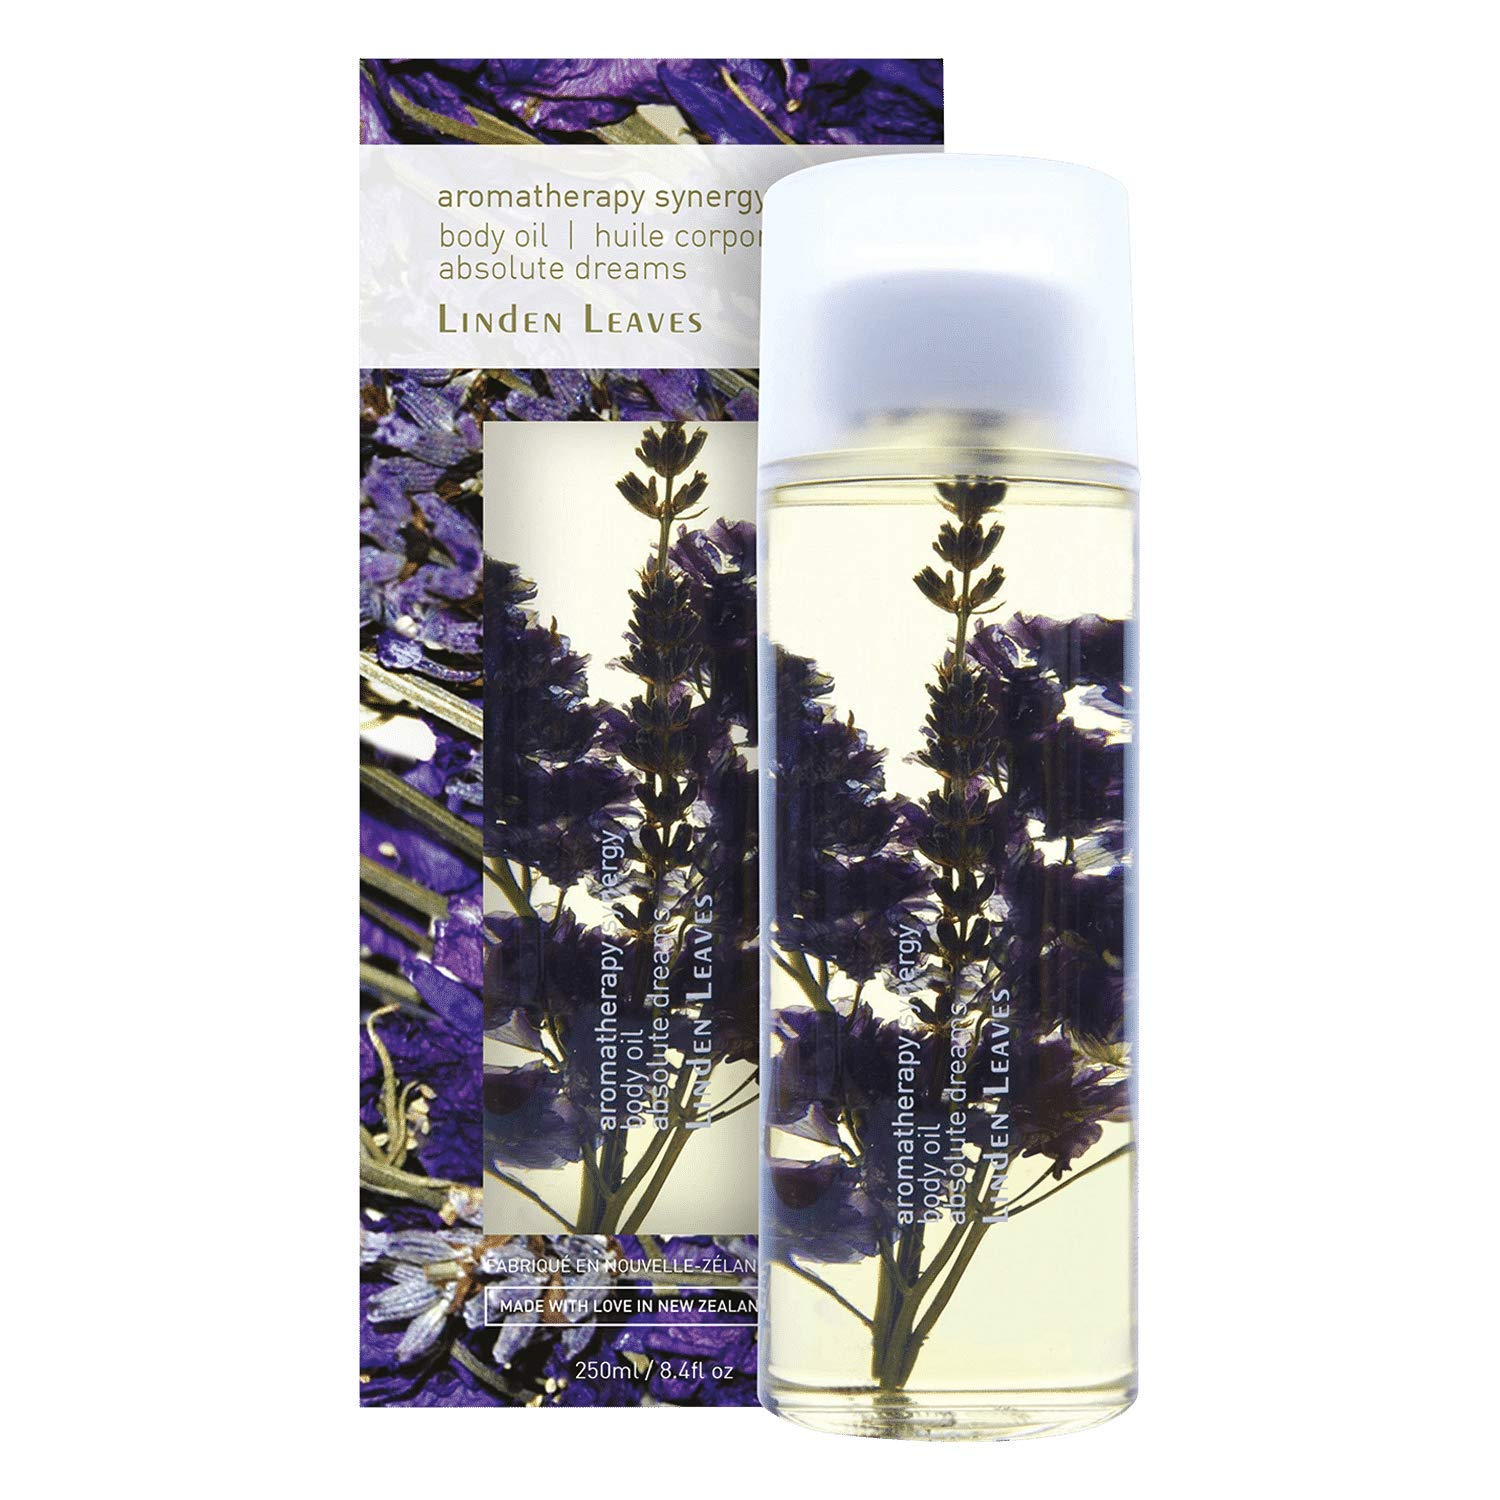 Linden Leaves Aromatherapy Synergy Absolute Dreams Body Oil, 8.4 Ounce